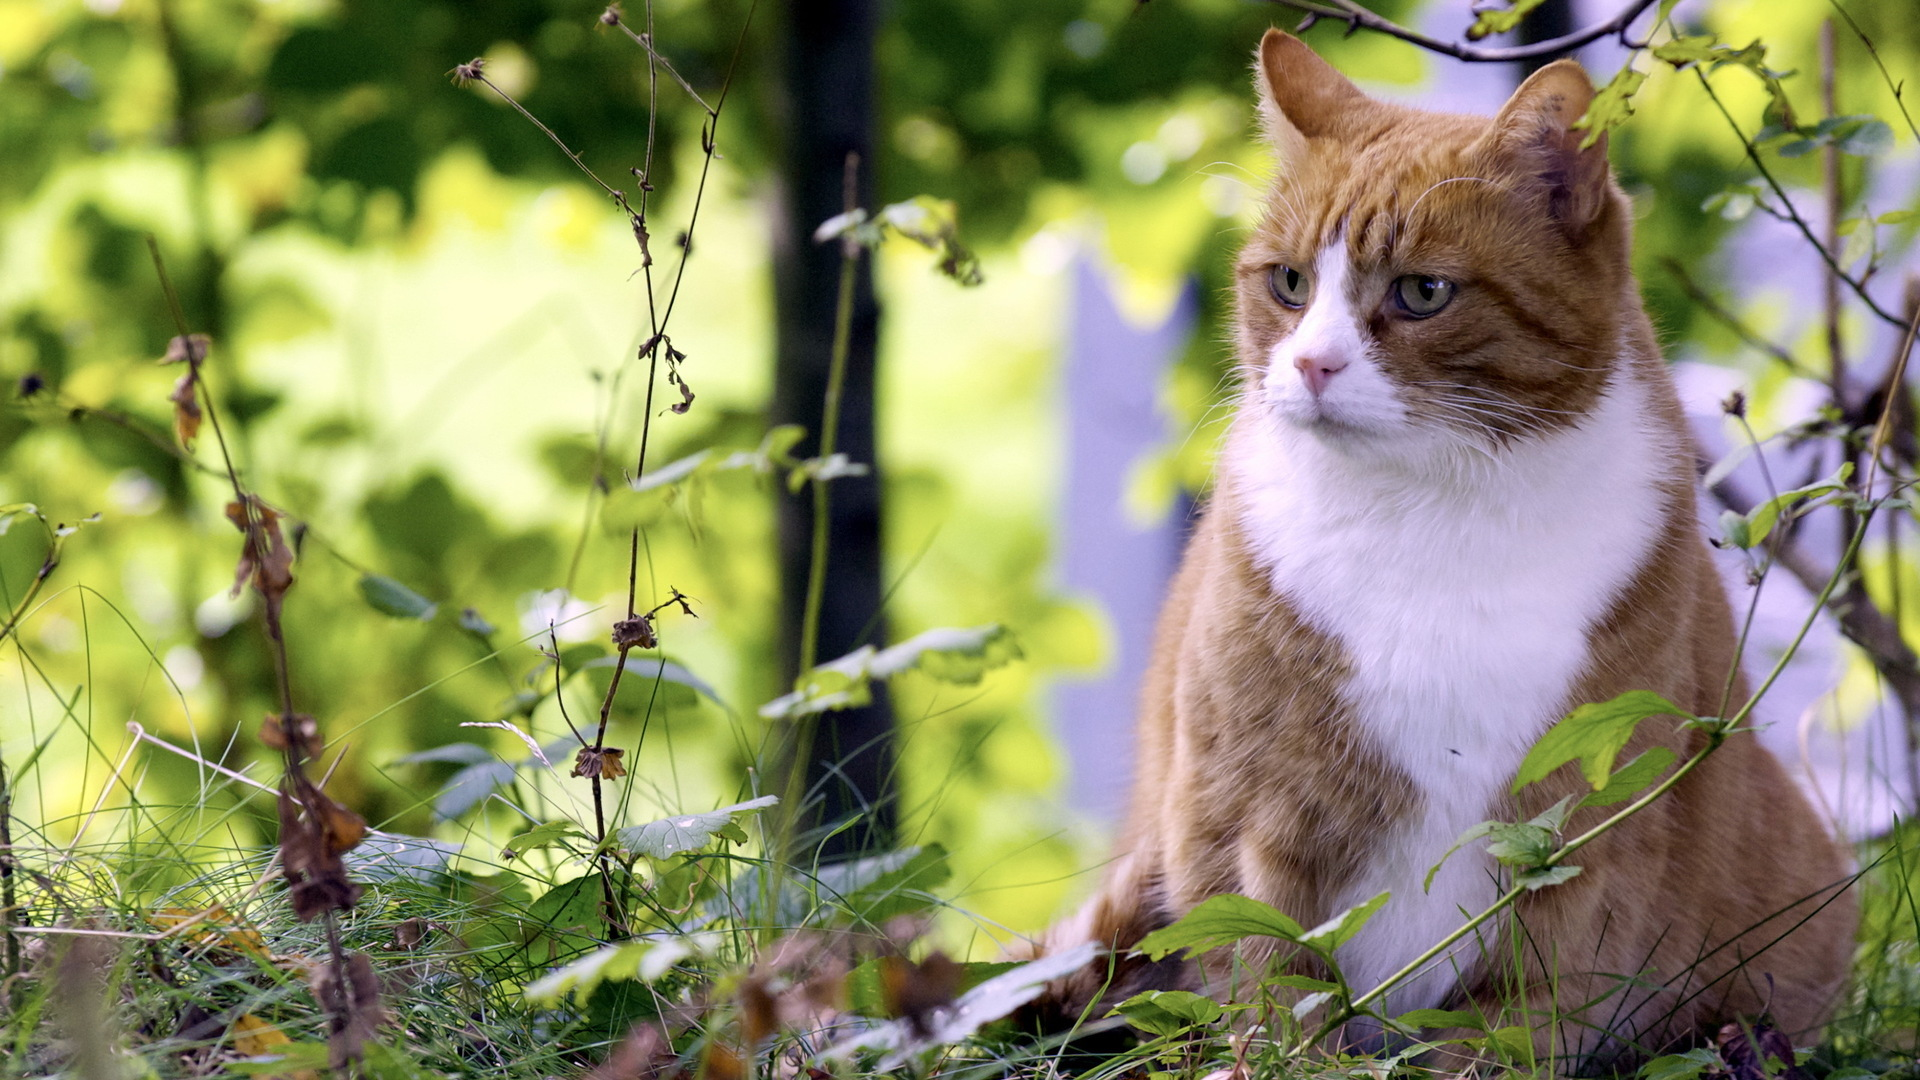 16239 download wallpaper Animals, Cats screensavers and pictures for free